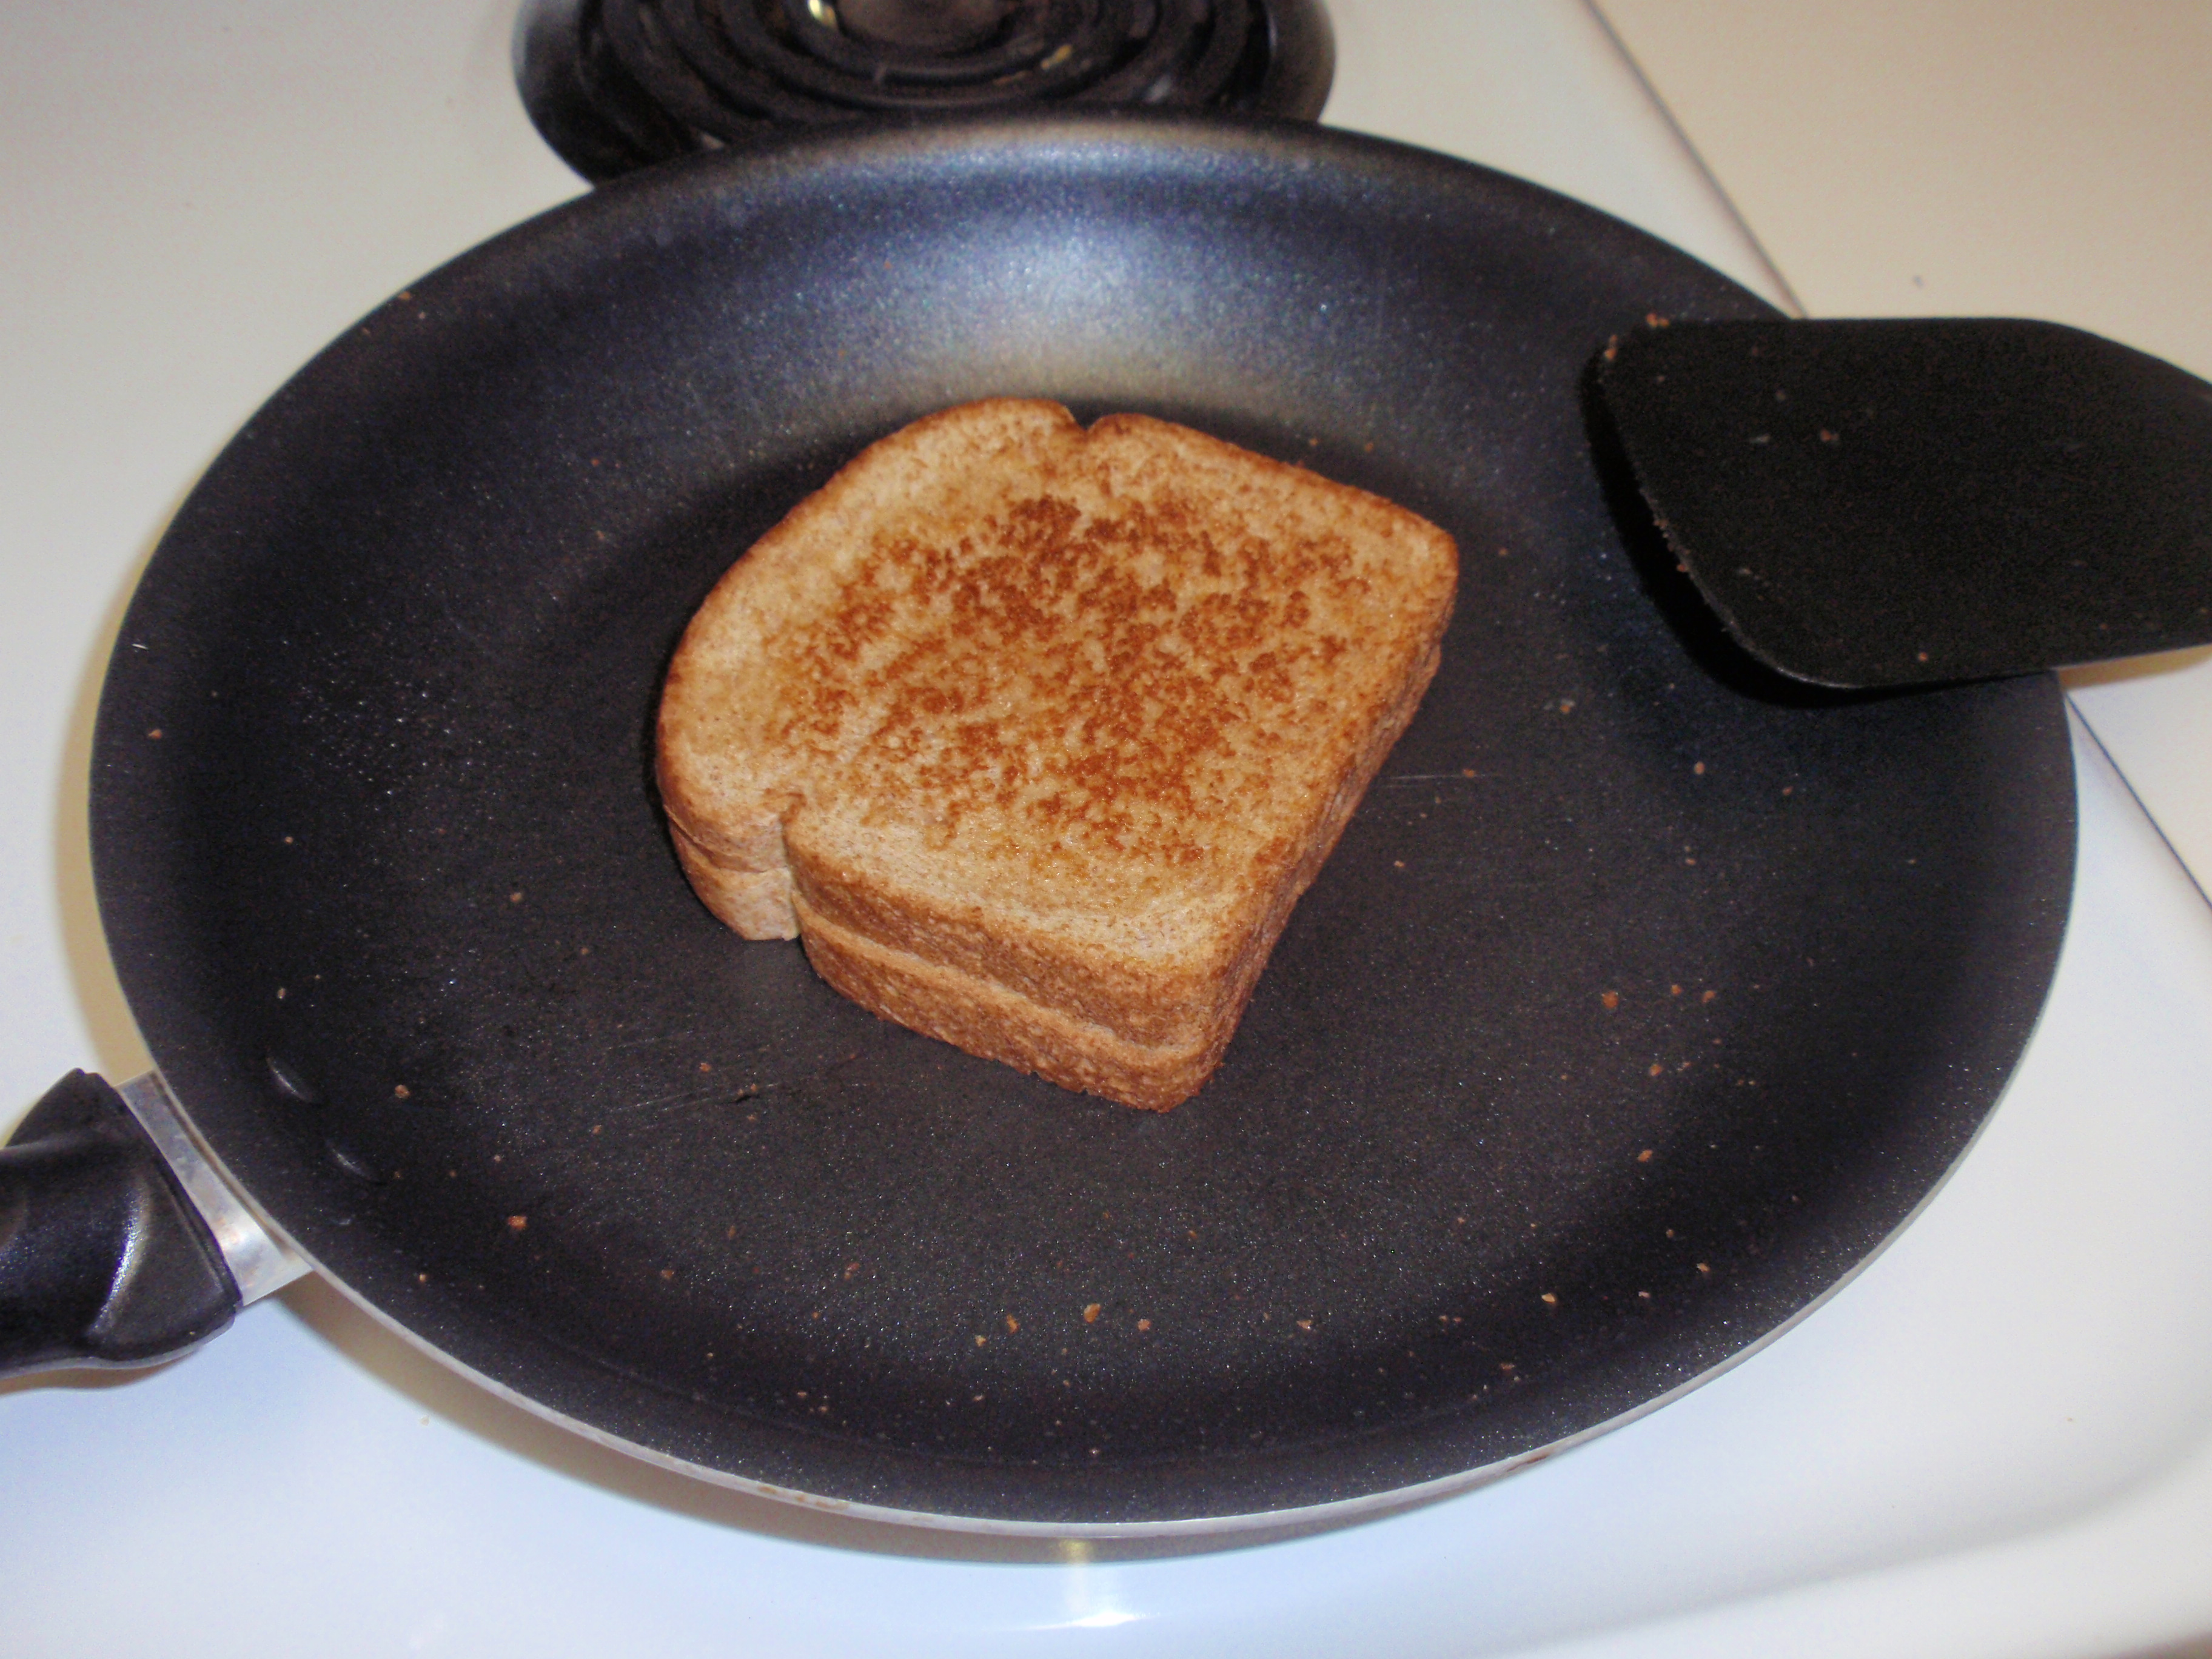 Picture of Cooking the Sandwich